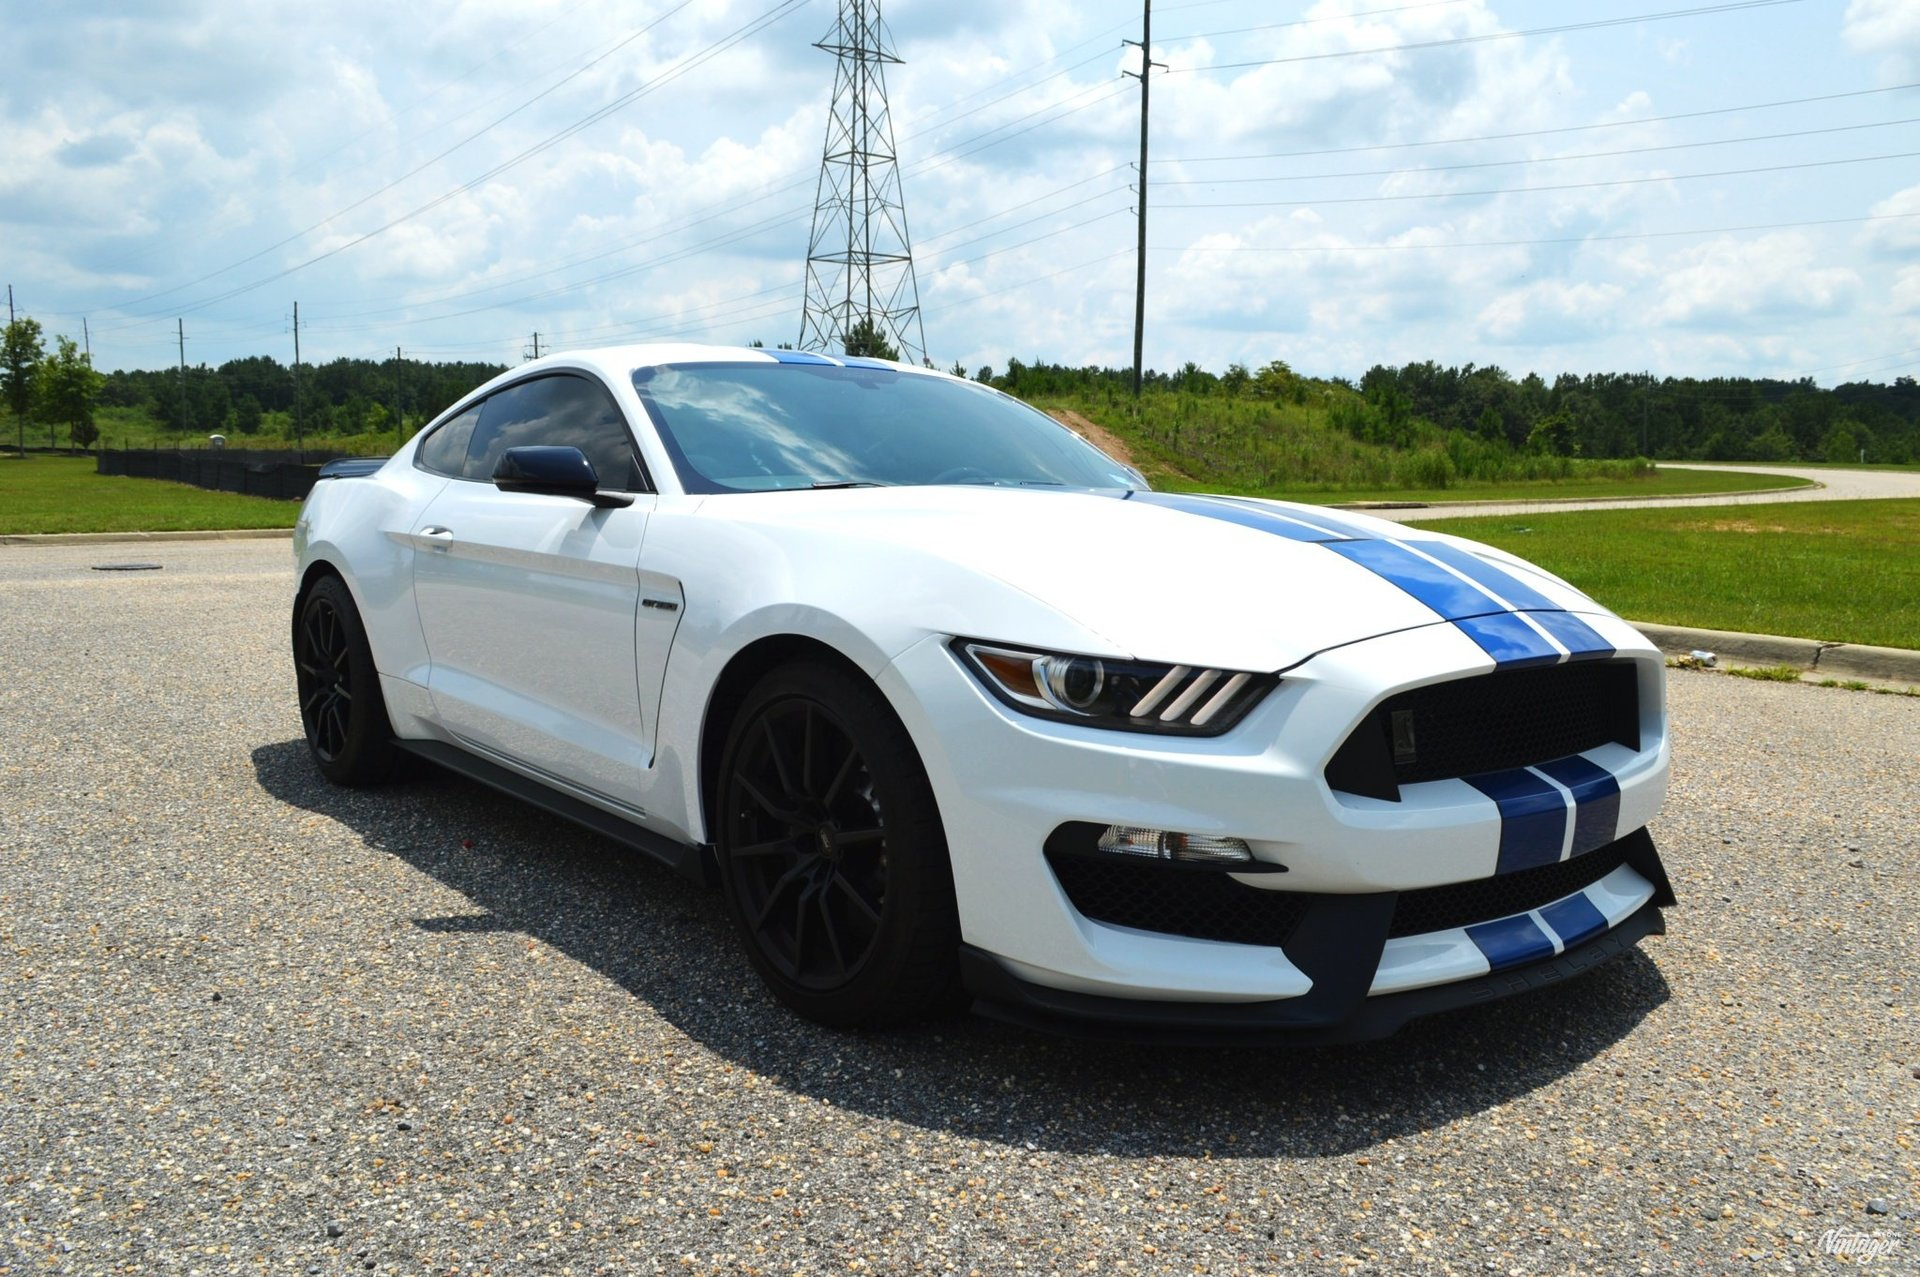 243079245ad8 hd 2017 shelby gt350